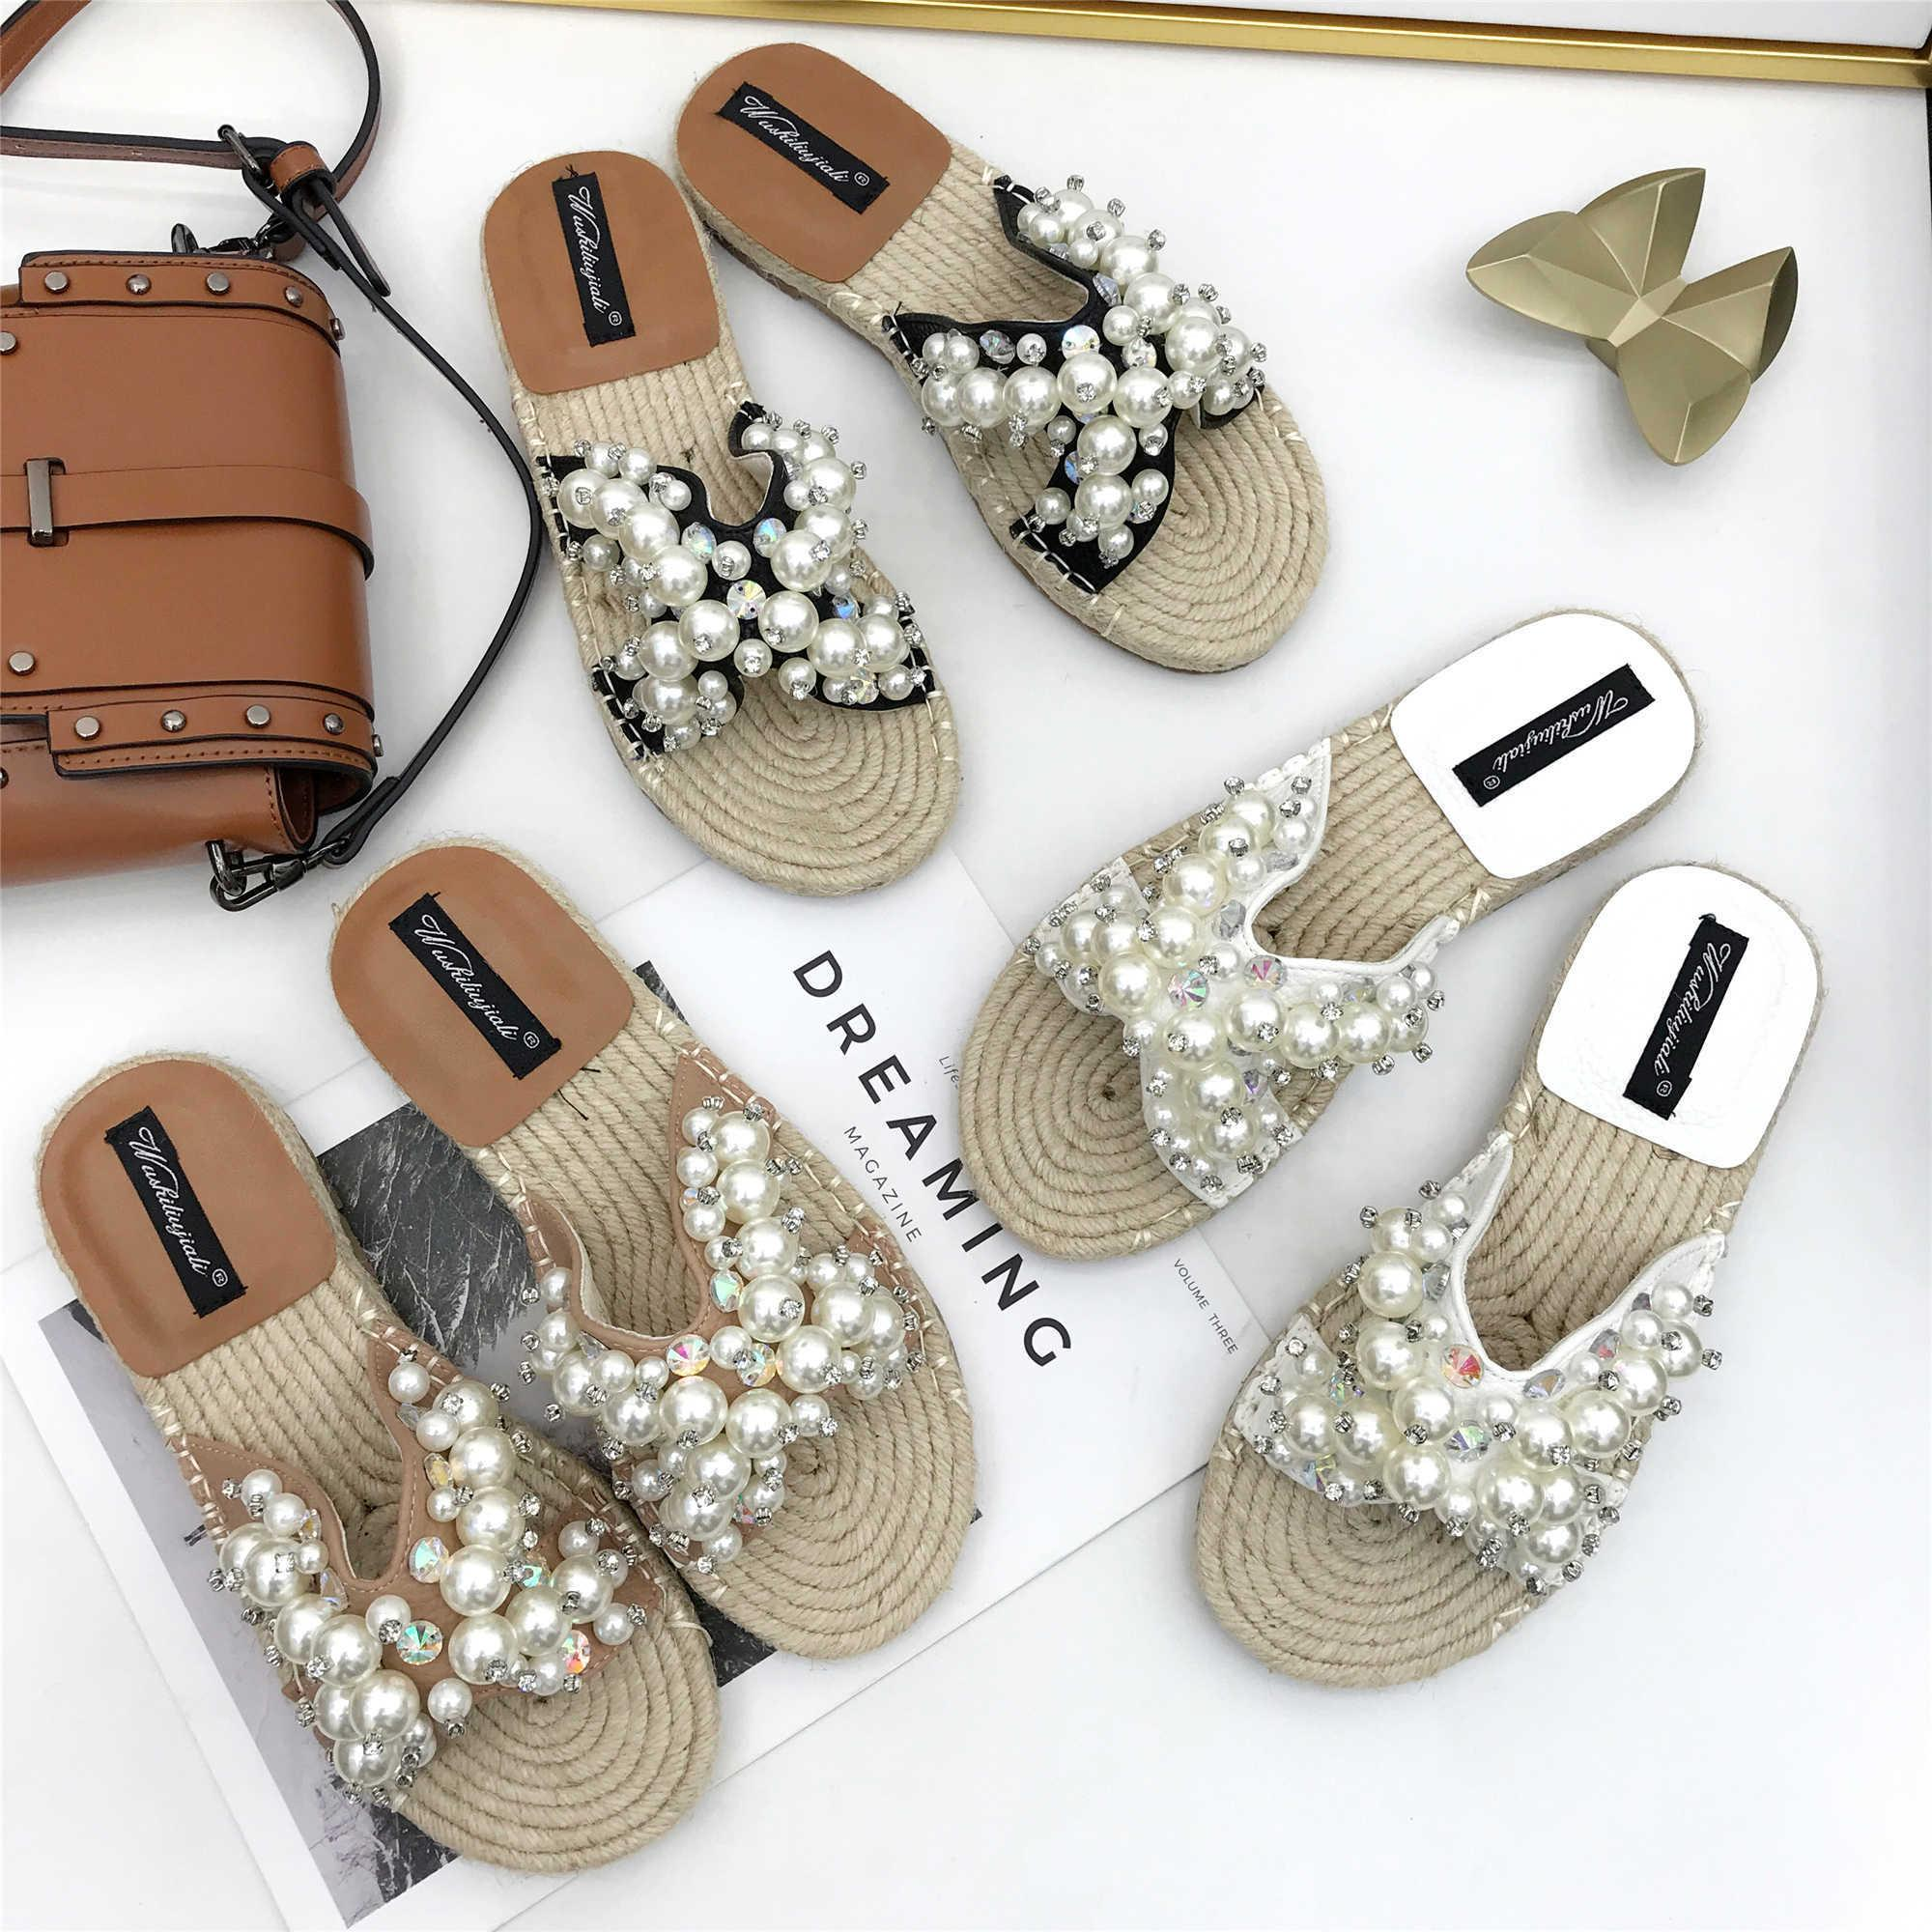 Crystal2019 Flat Bottom Rhinestone Pearl Slipper Woman One The Word Drag Sandy Beach Straw Plaited Article A String Of Beads Sandals